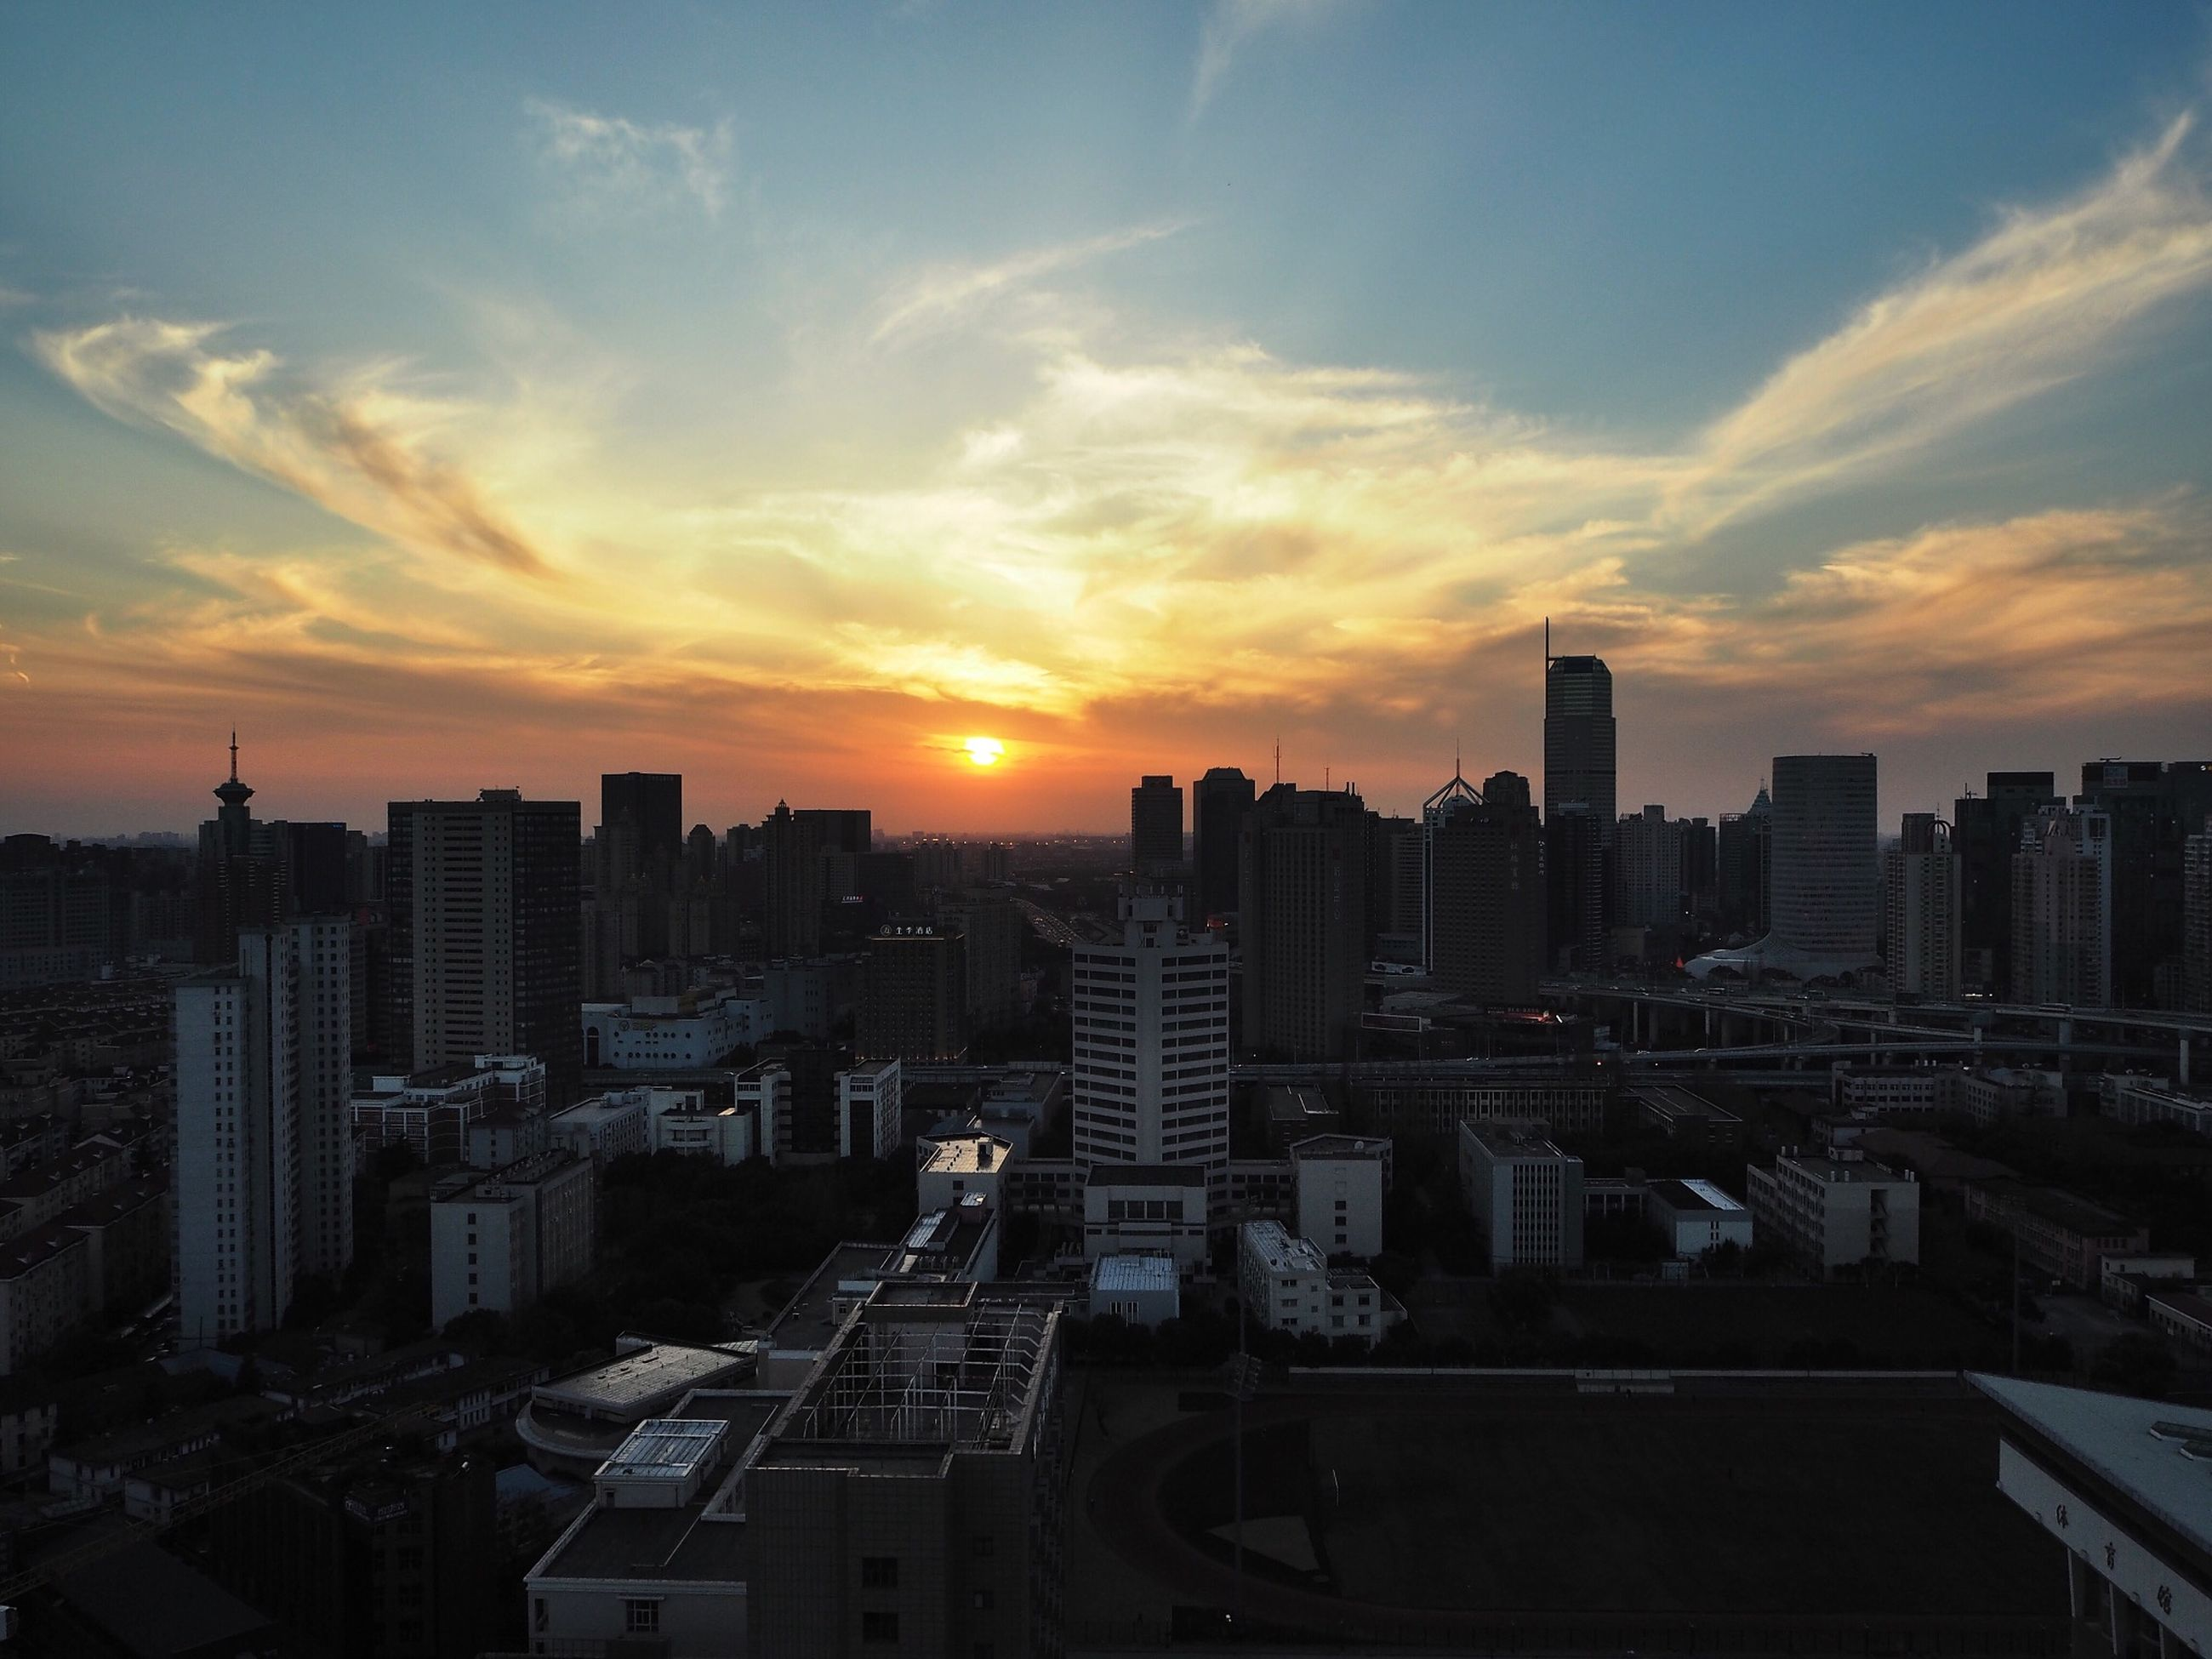 sunset, building exterior, city, cityscape, architecture, built structure, orange color, sky, high angle view, skyscraper, crowded, sun, residential district, city life, silhouette, residential building, cloud - sky, tower, urban skyline, sunlight